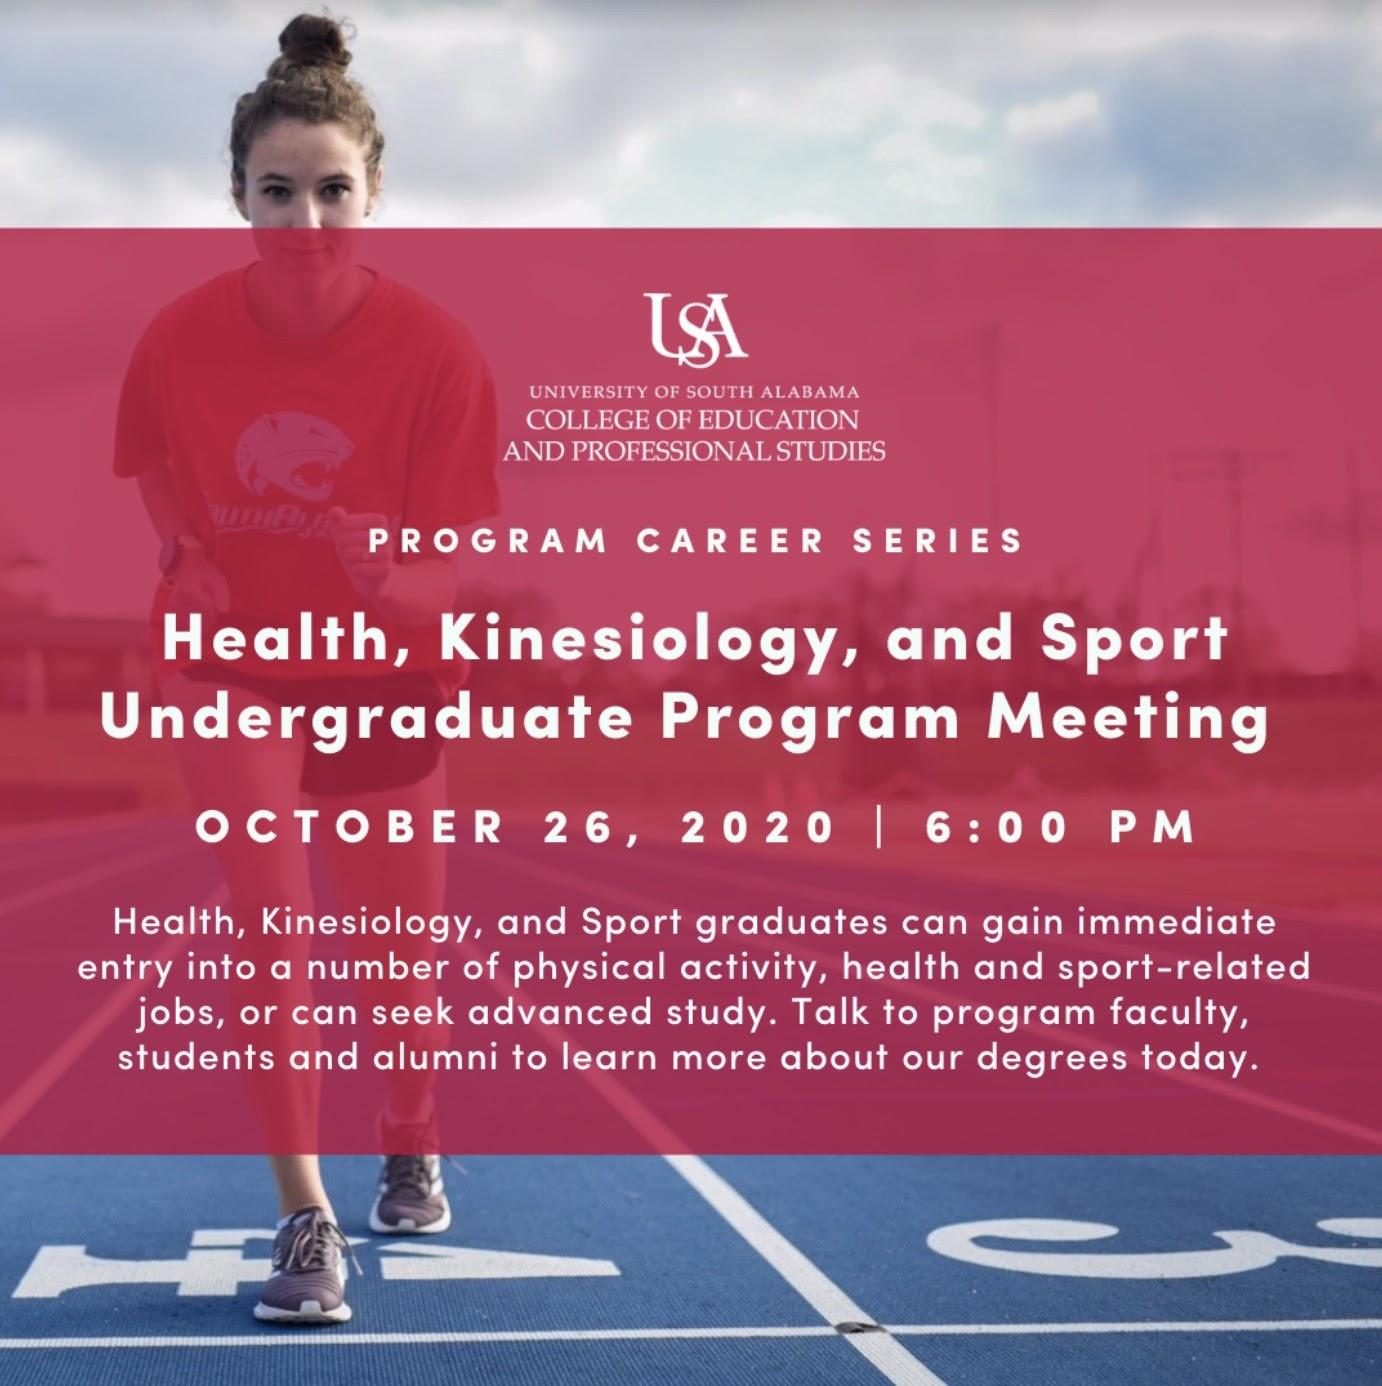 Health, Kinesiology, and Sport Zoom meeting info